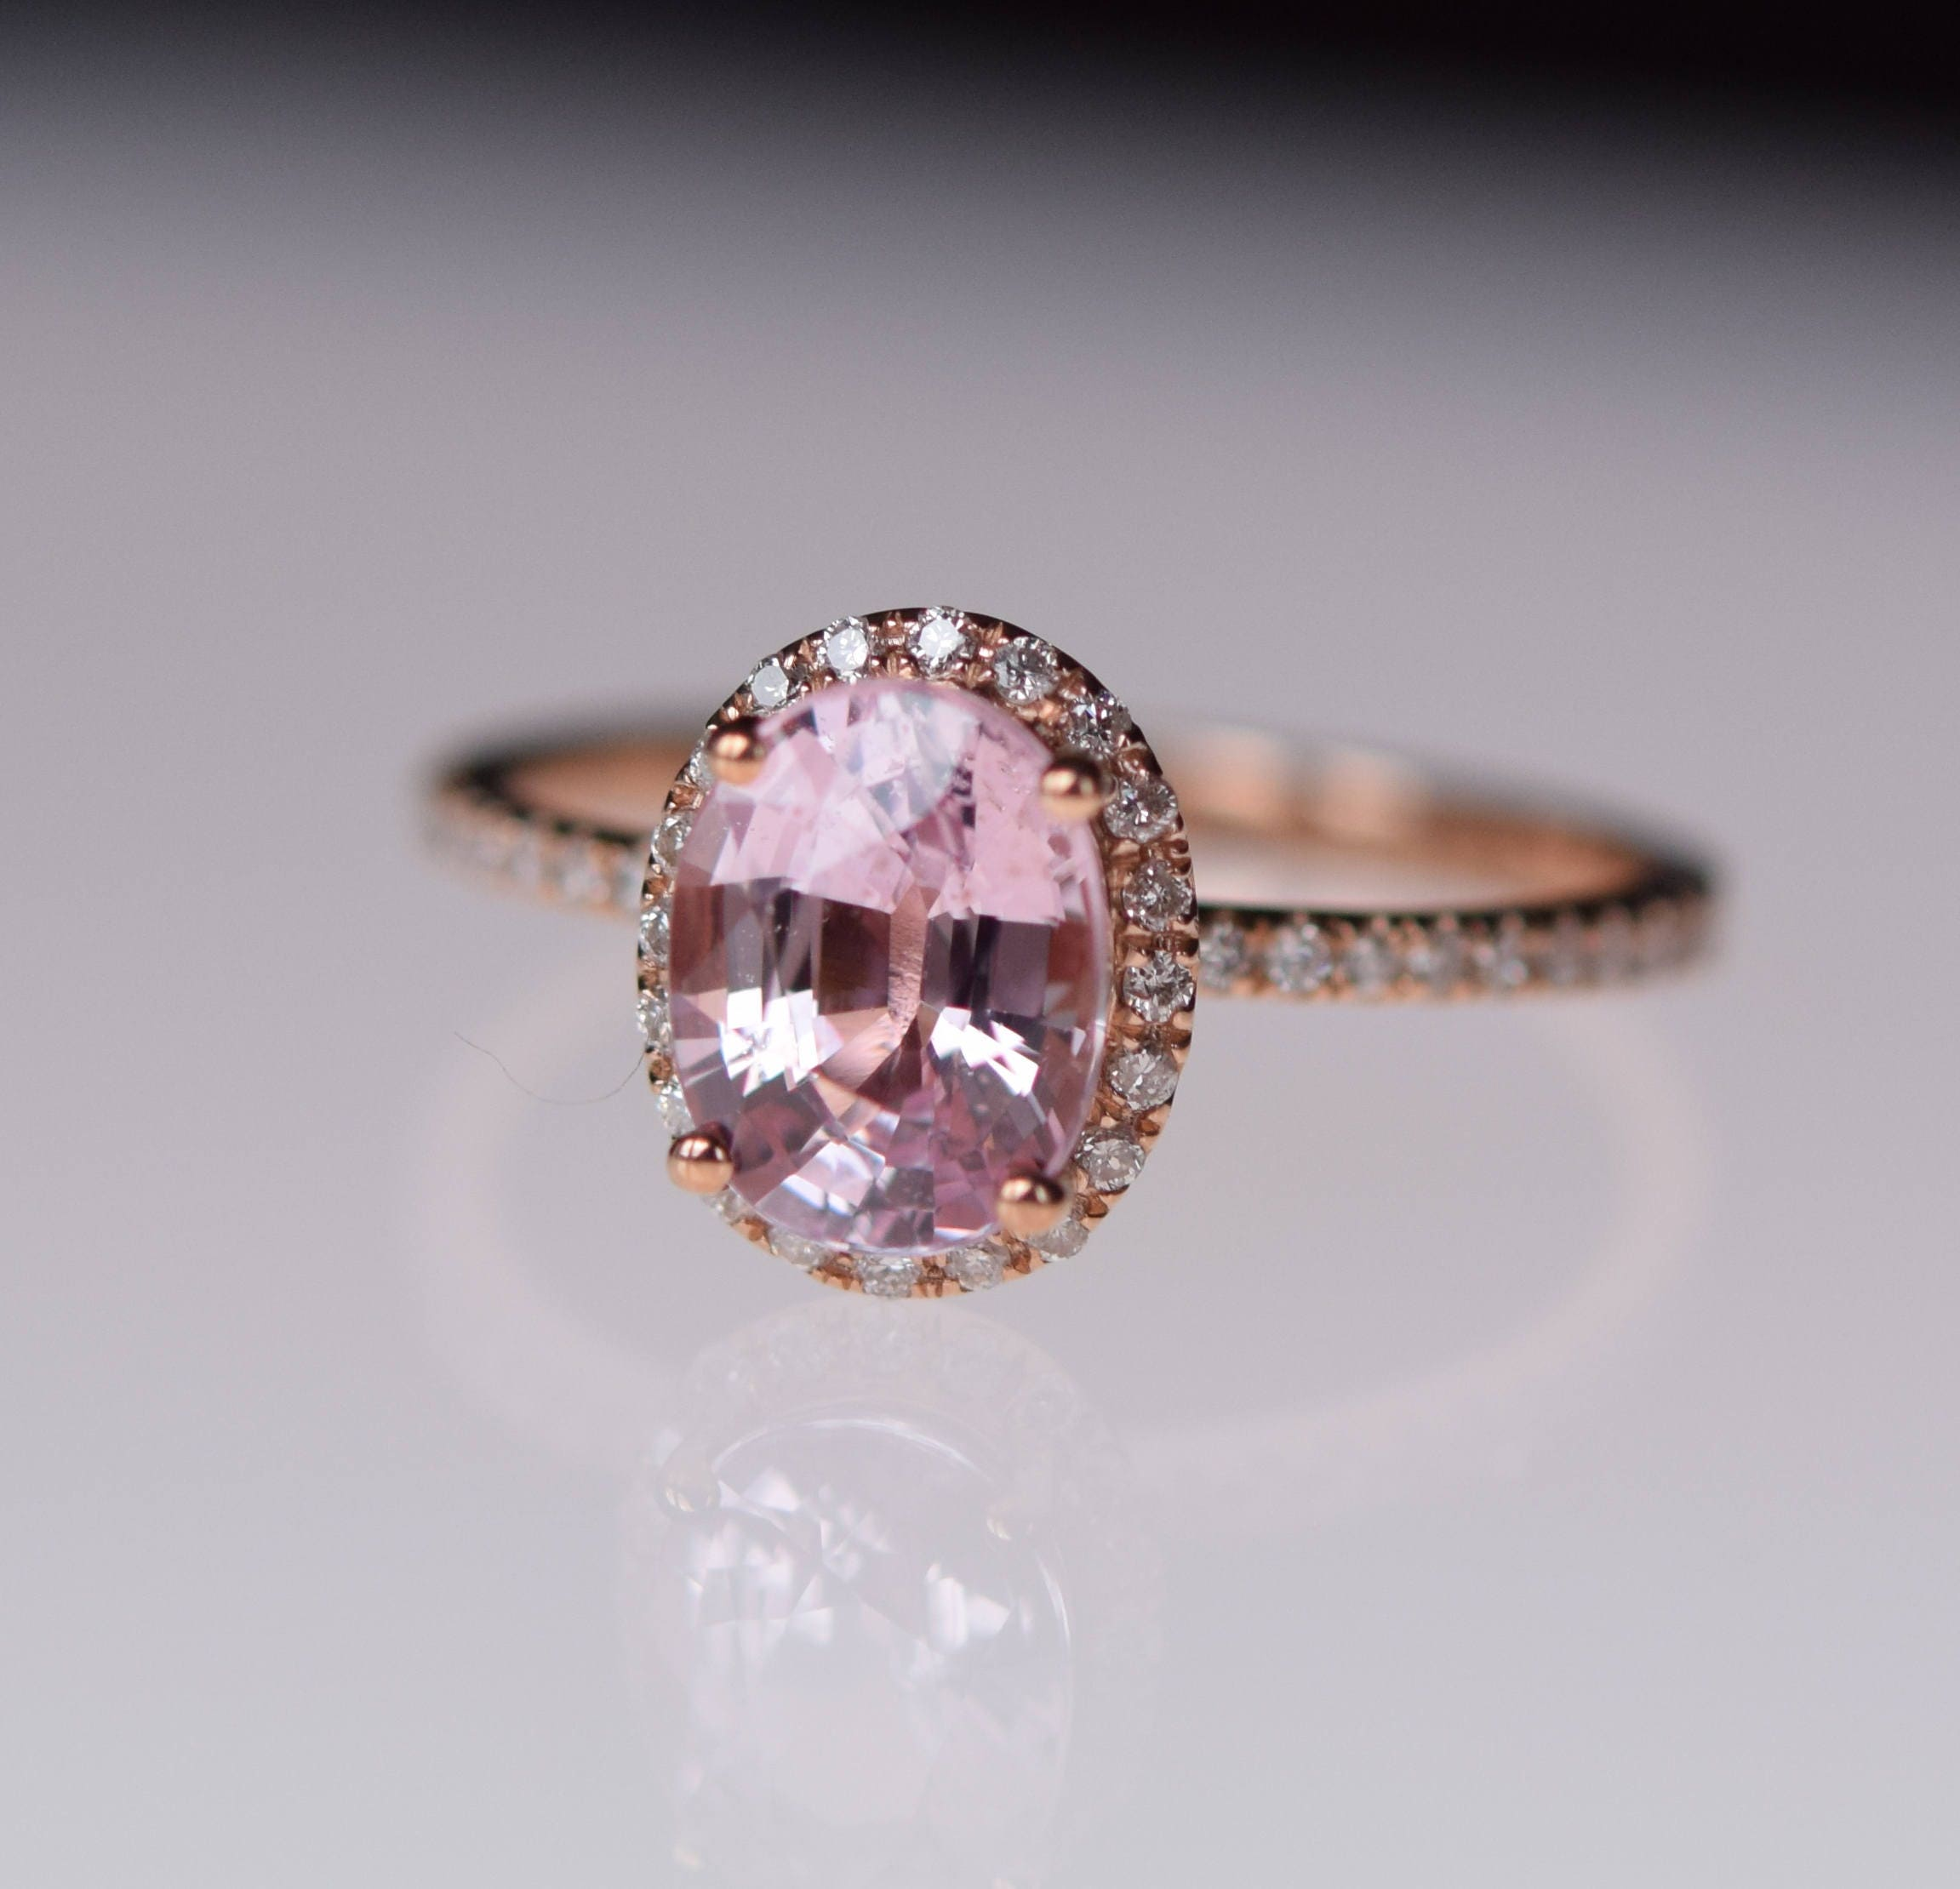 profile rose diamond grey box peach sapp kristin products ring gold champagne sapphire rings side vintage halo in engagement ps velvet emerson low